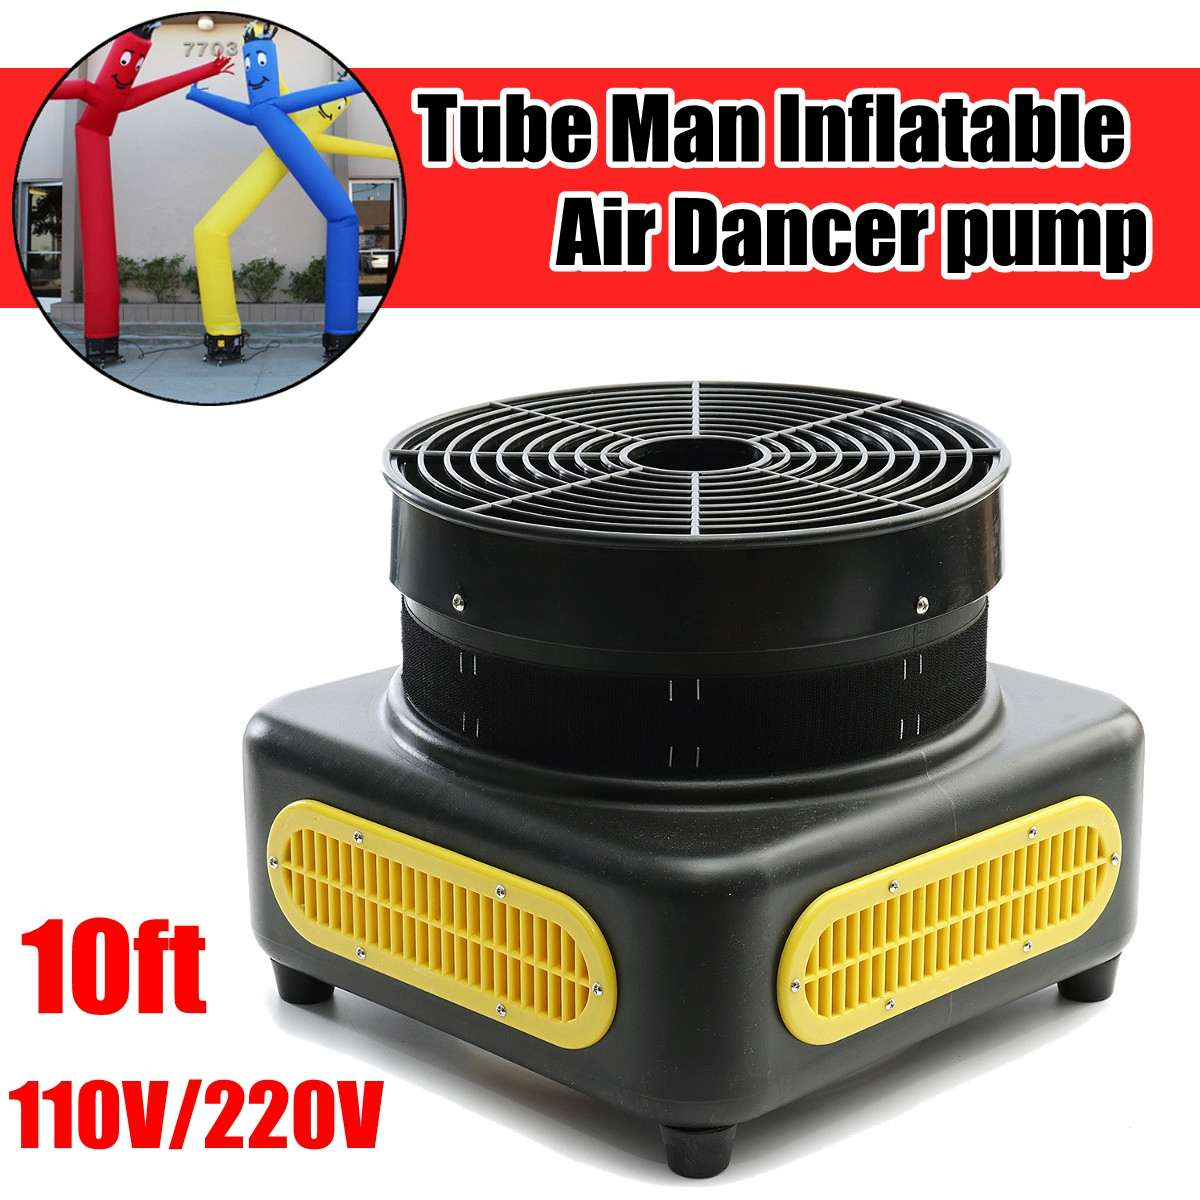 Wind power Black color Metal Air pump blower Used for Tube Man Inflatable dancer can choose 220V/110VWind power Black color Metal Air pump blower Used for Tube Man Inflatable dancer can choose 220V/110V